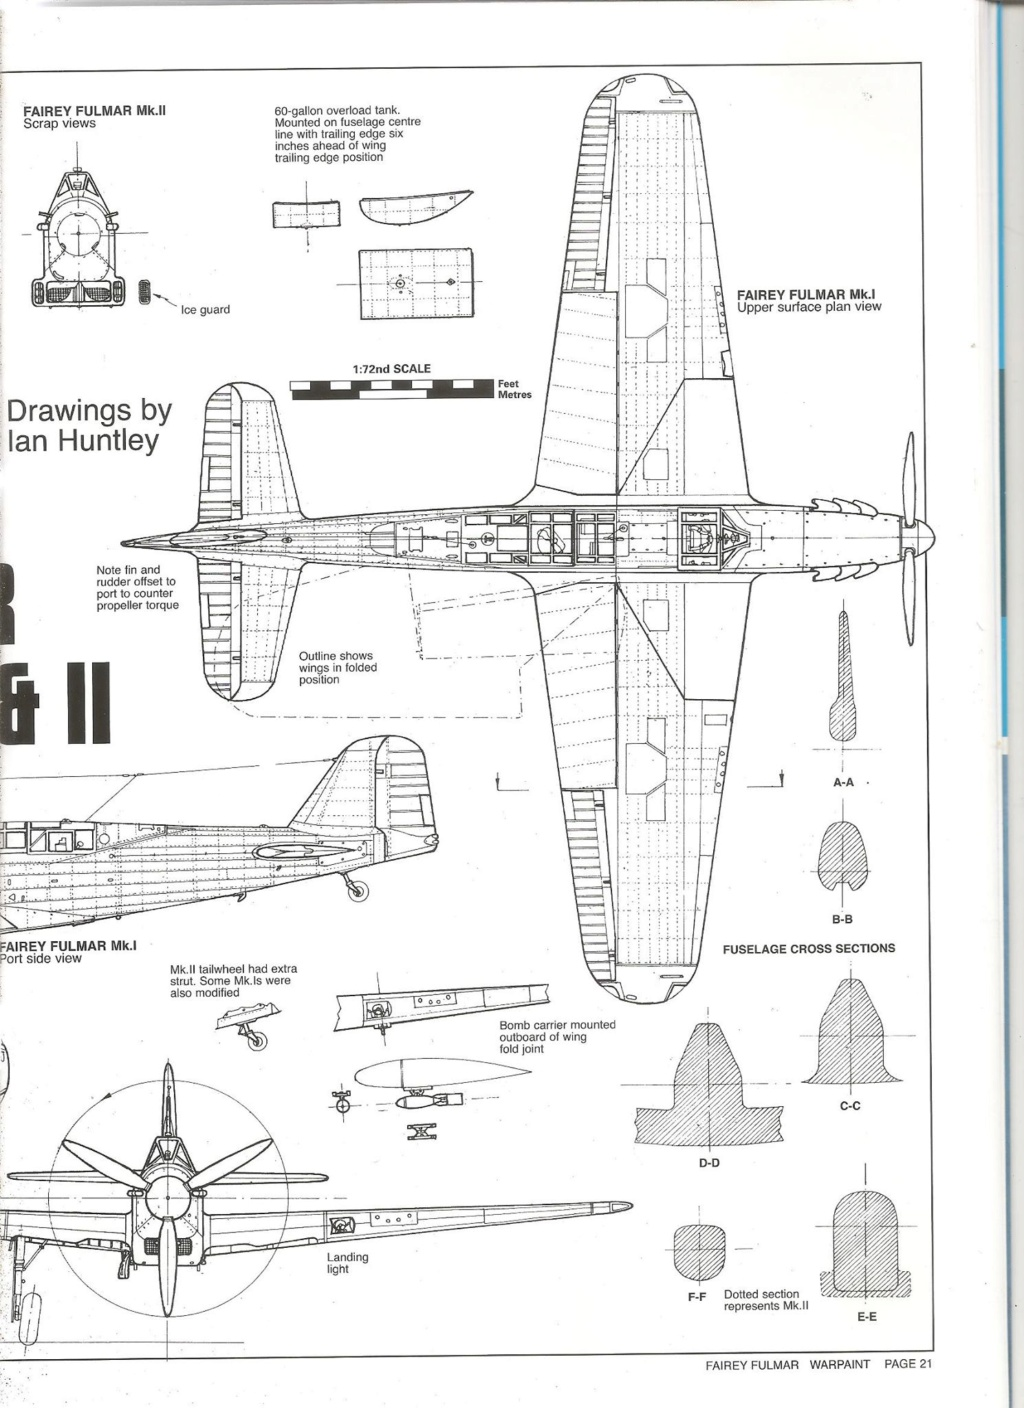 Fairey Fulmar Mark II (Eduard réf 1130 Limited Edition 1/48 ) 73010410